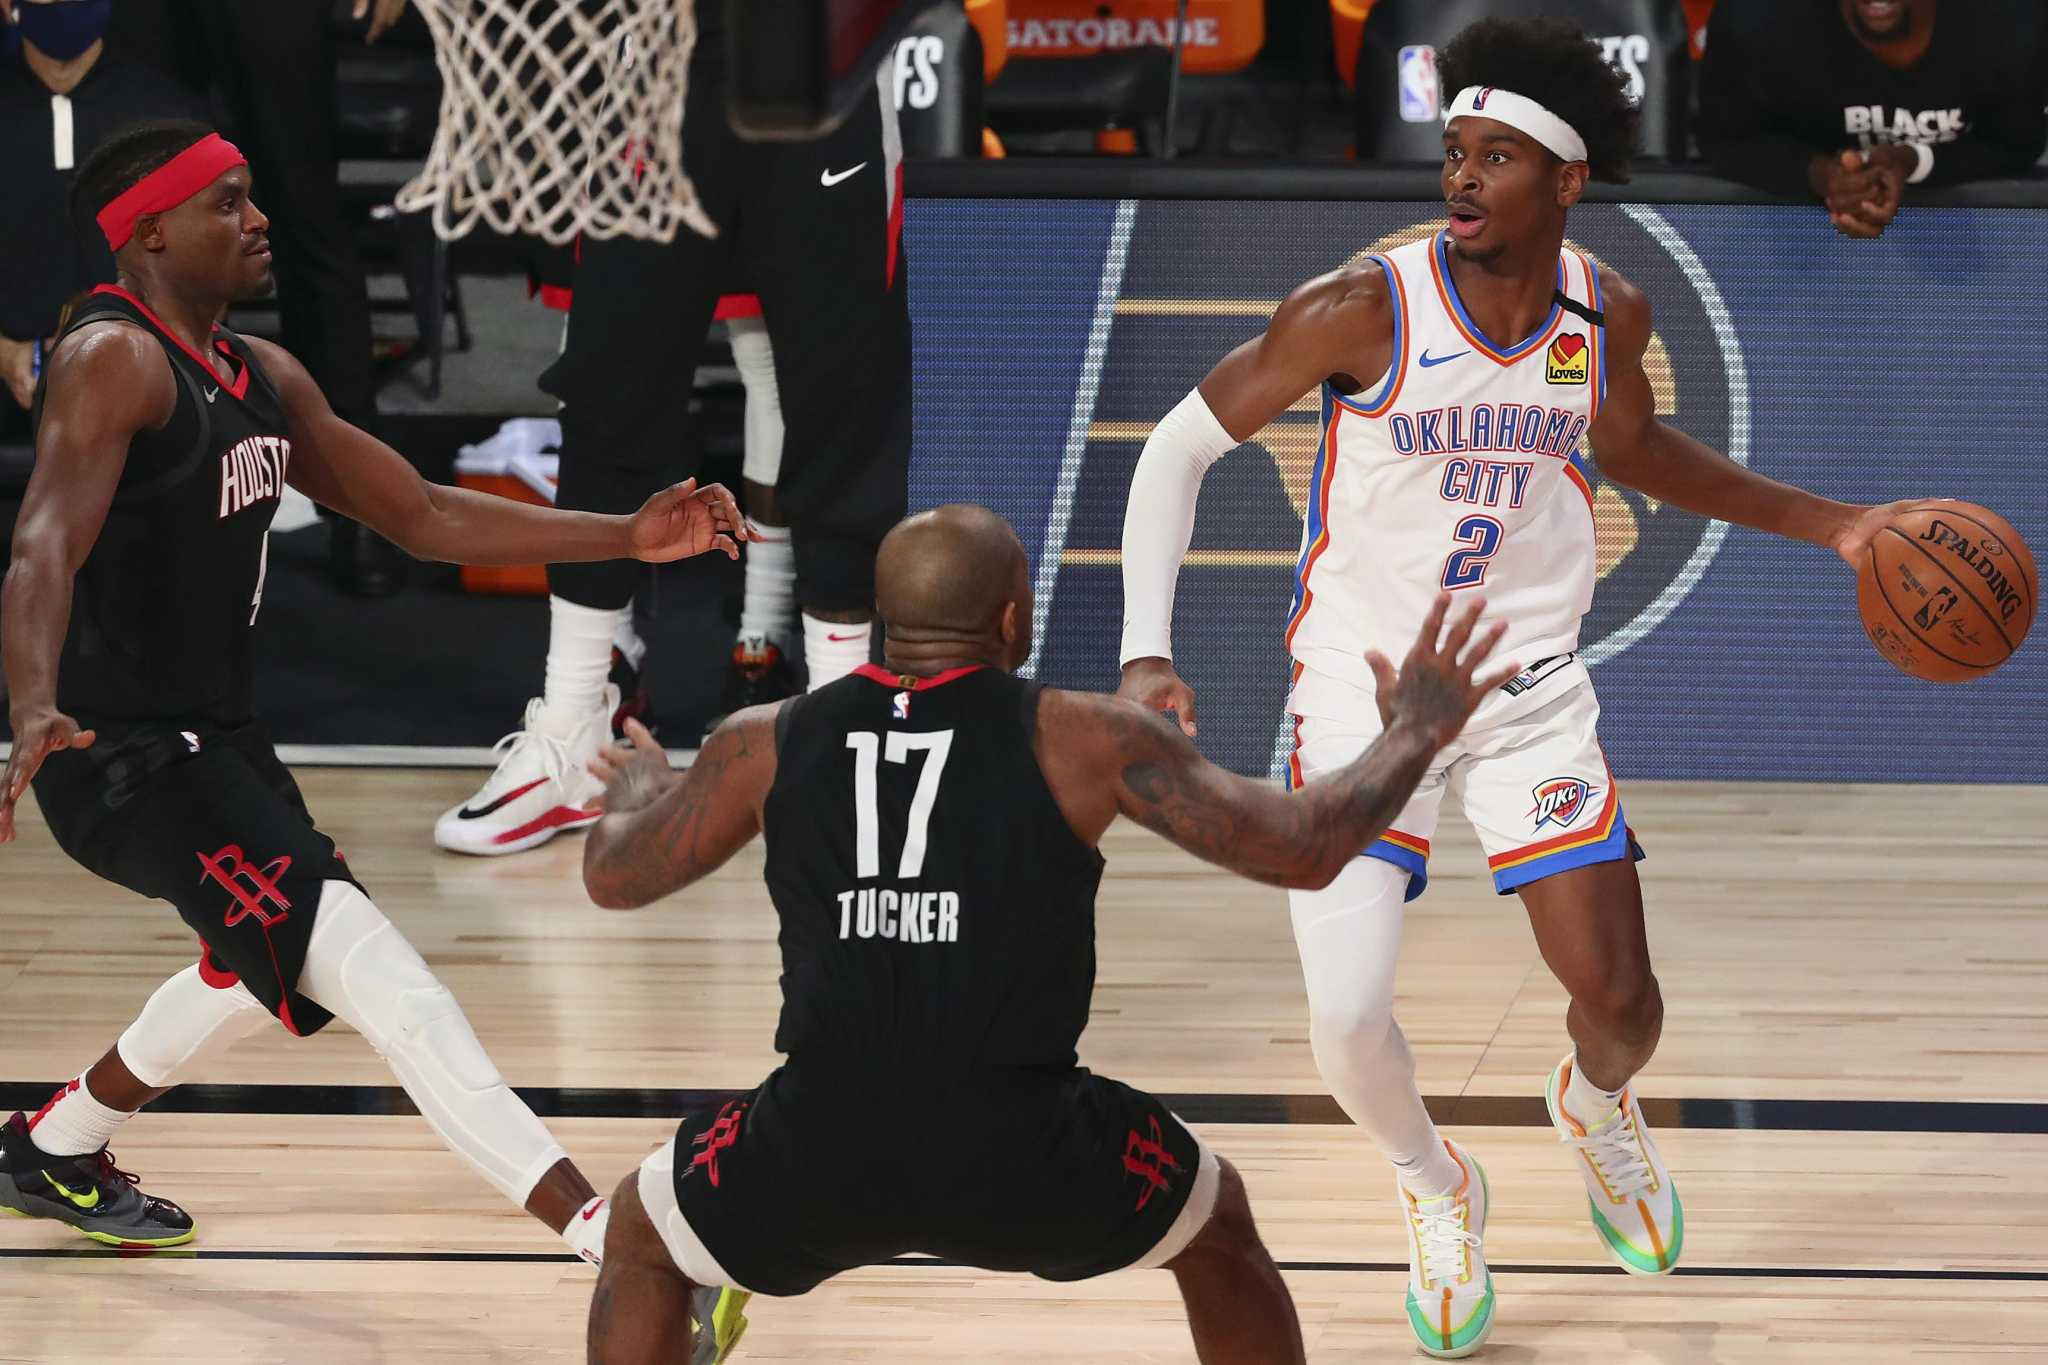 Young Thunder finding their legs in playoff run vs. Rockets - HoustonChronicle.com